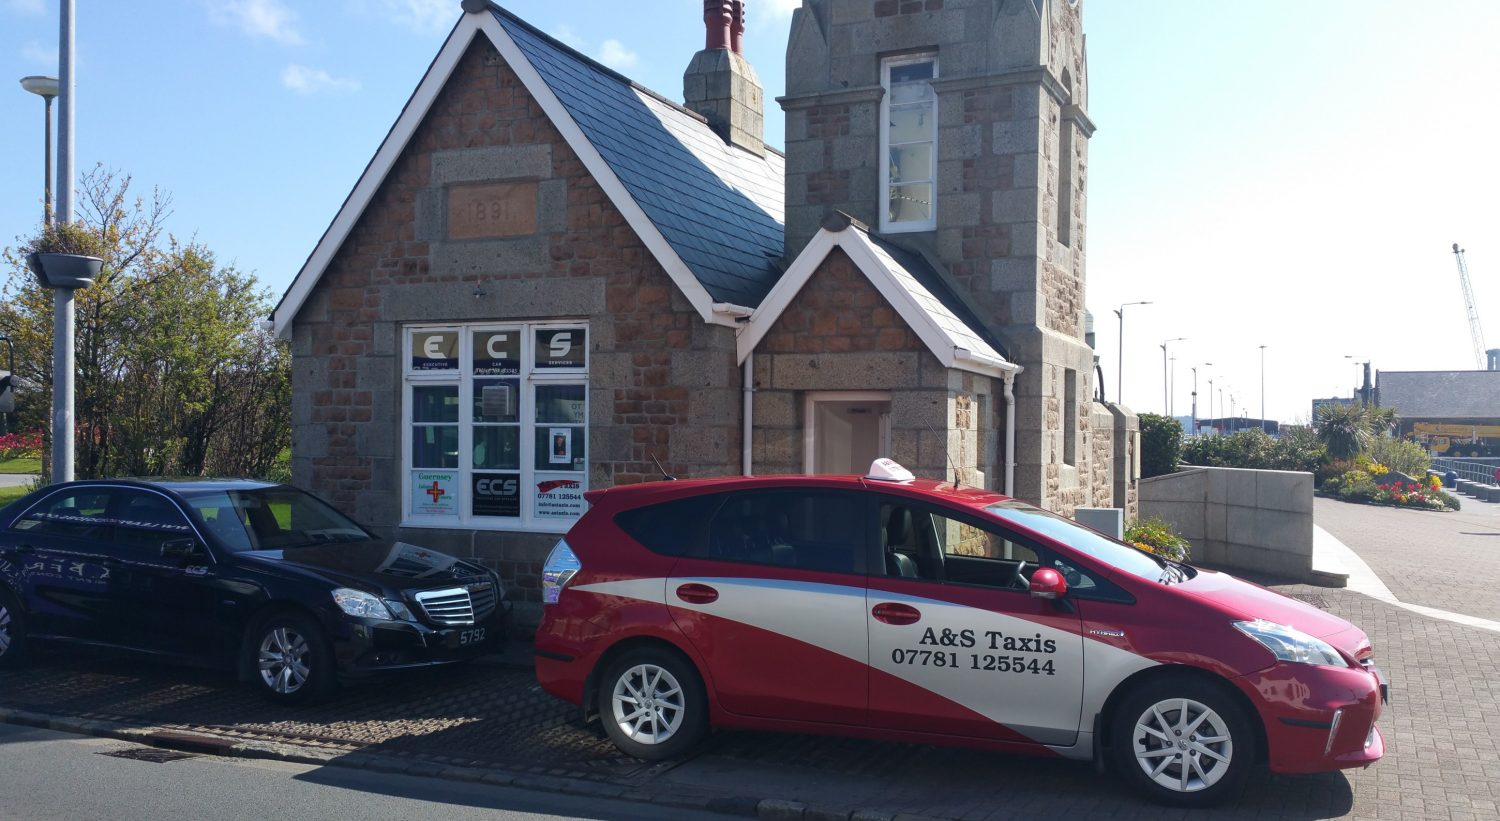 A&S Taxis Limited